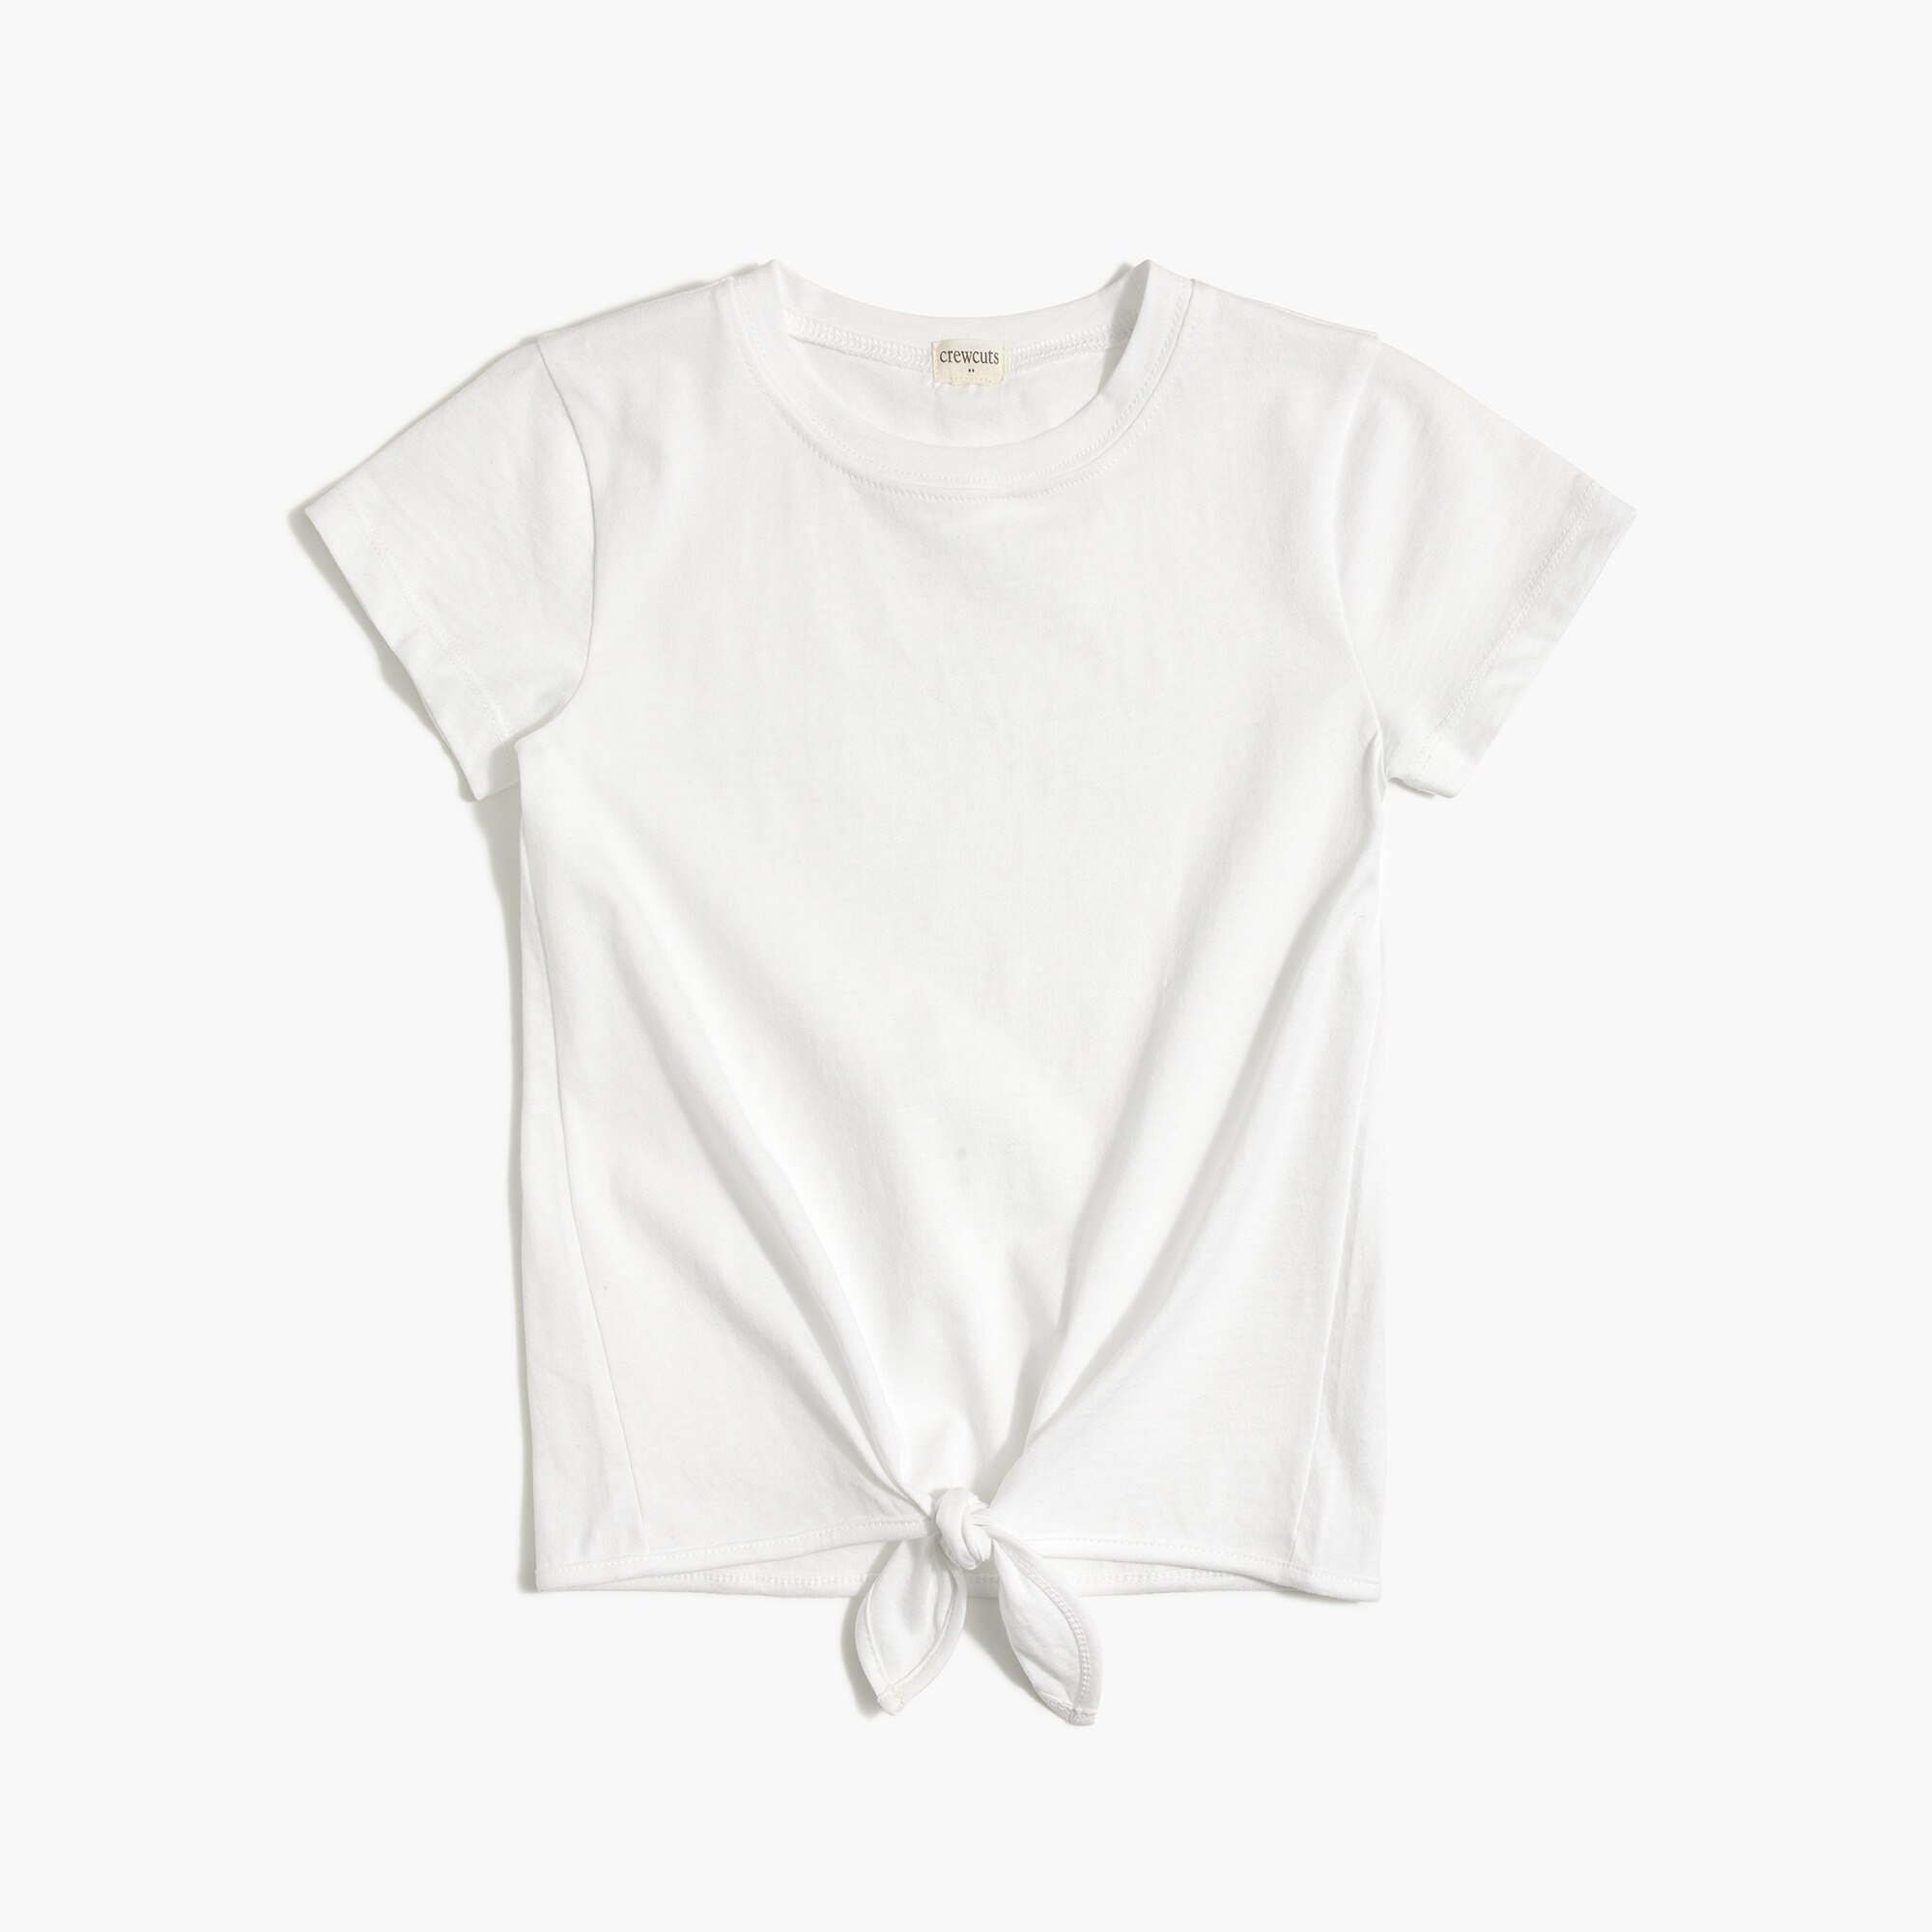 Image 2 for Girls' tie-front T-shirt